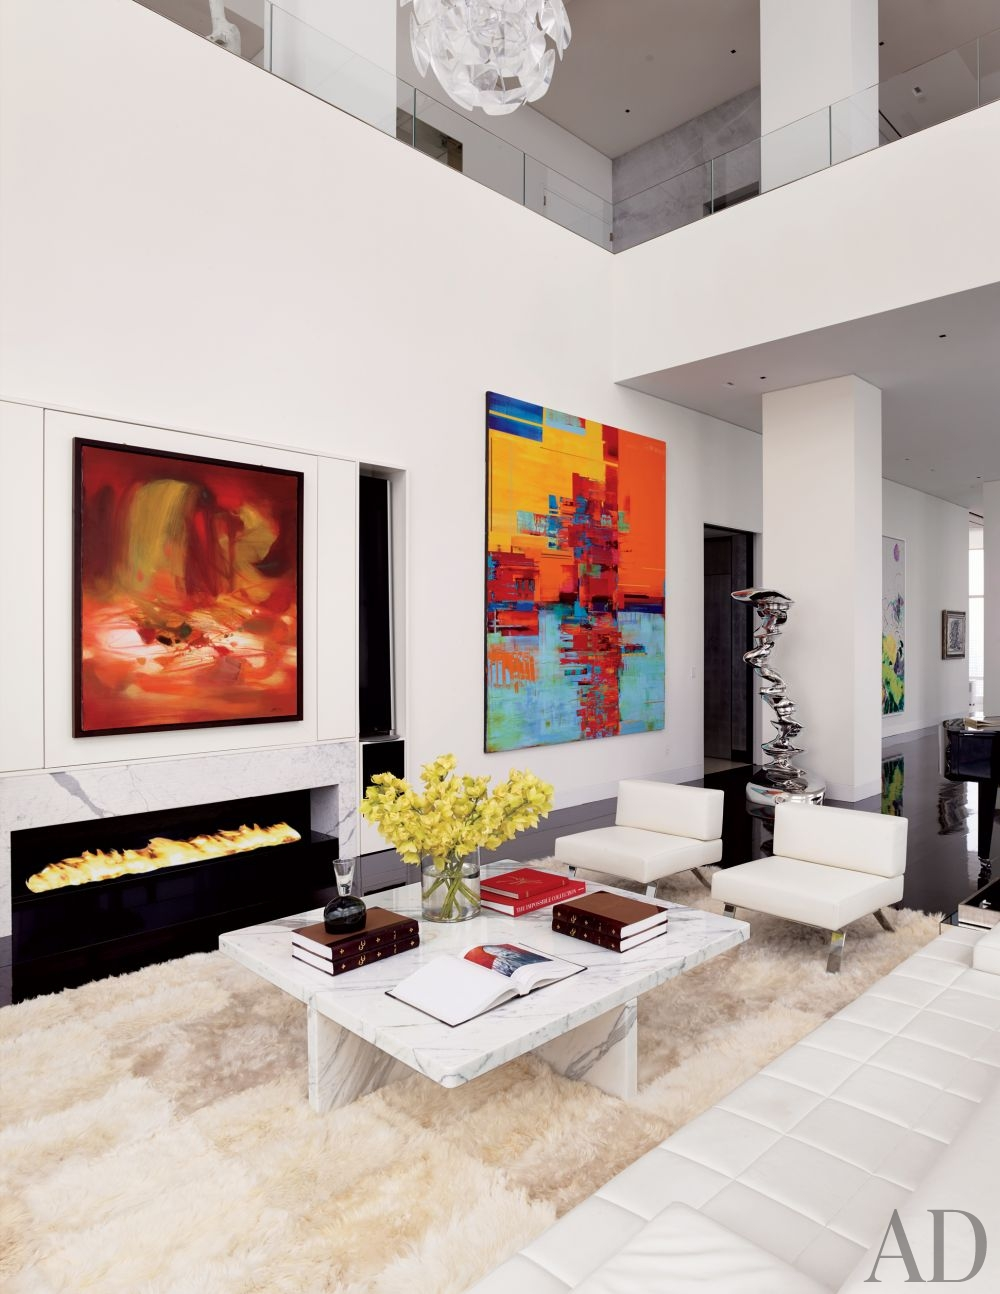 contemporary-living-room-oda-architecture-new-york-new-york-201312-2_1000-watermarked